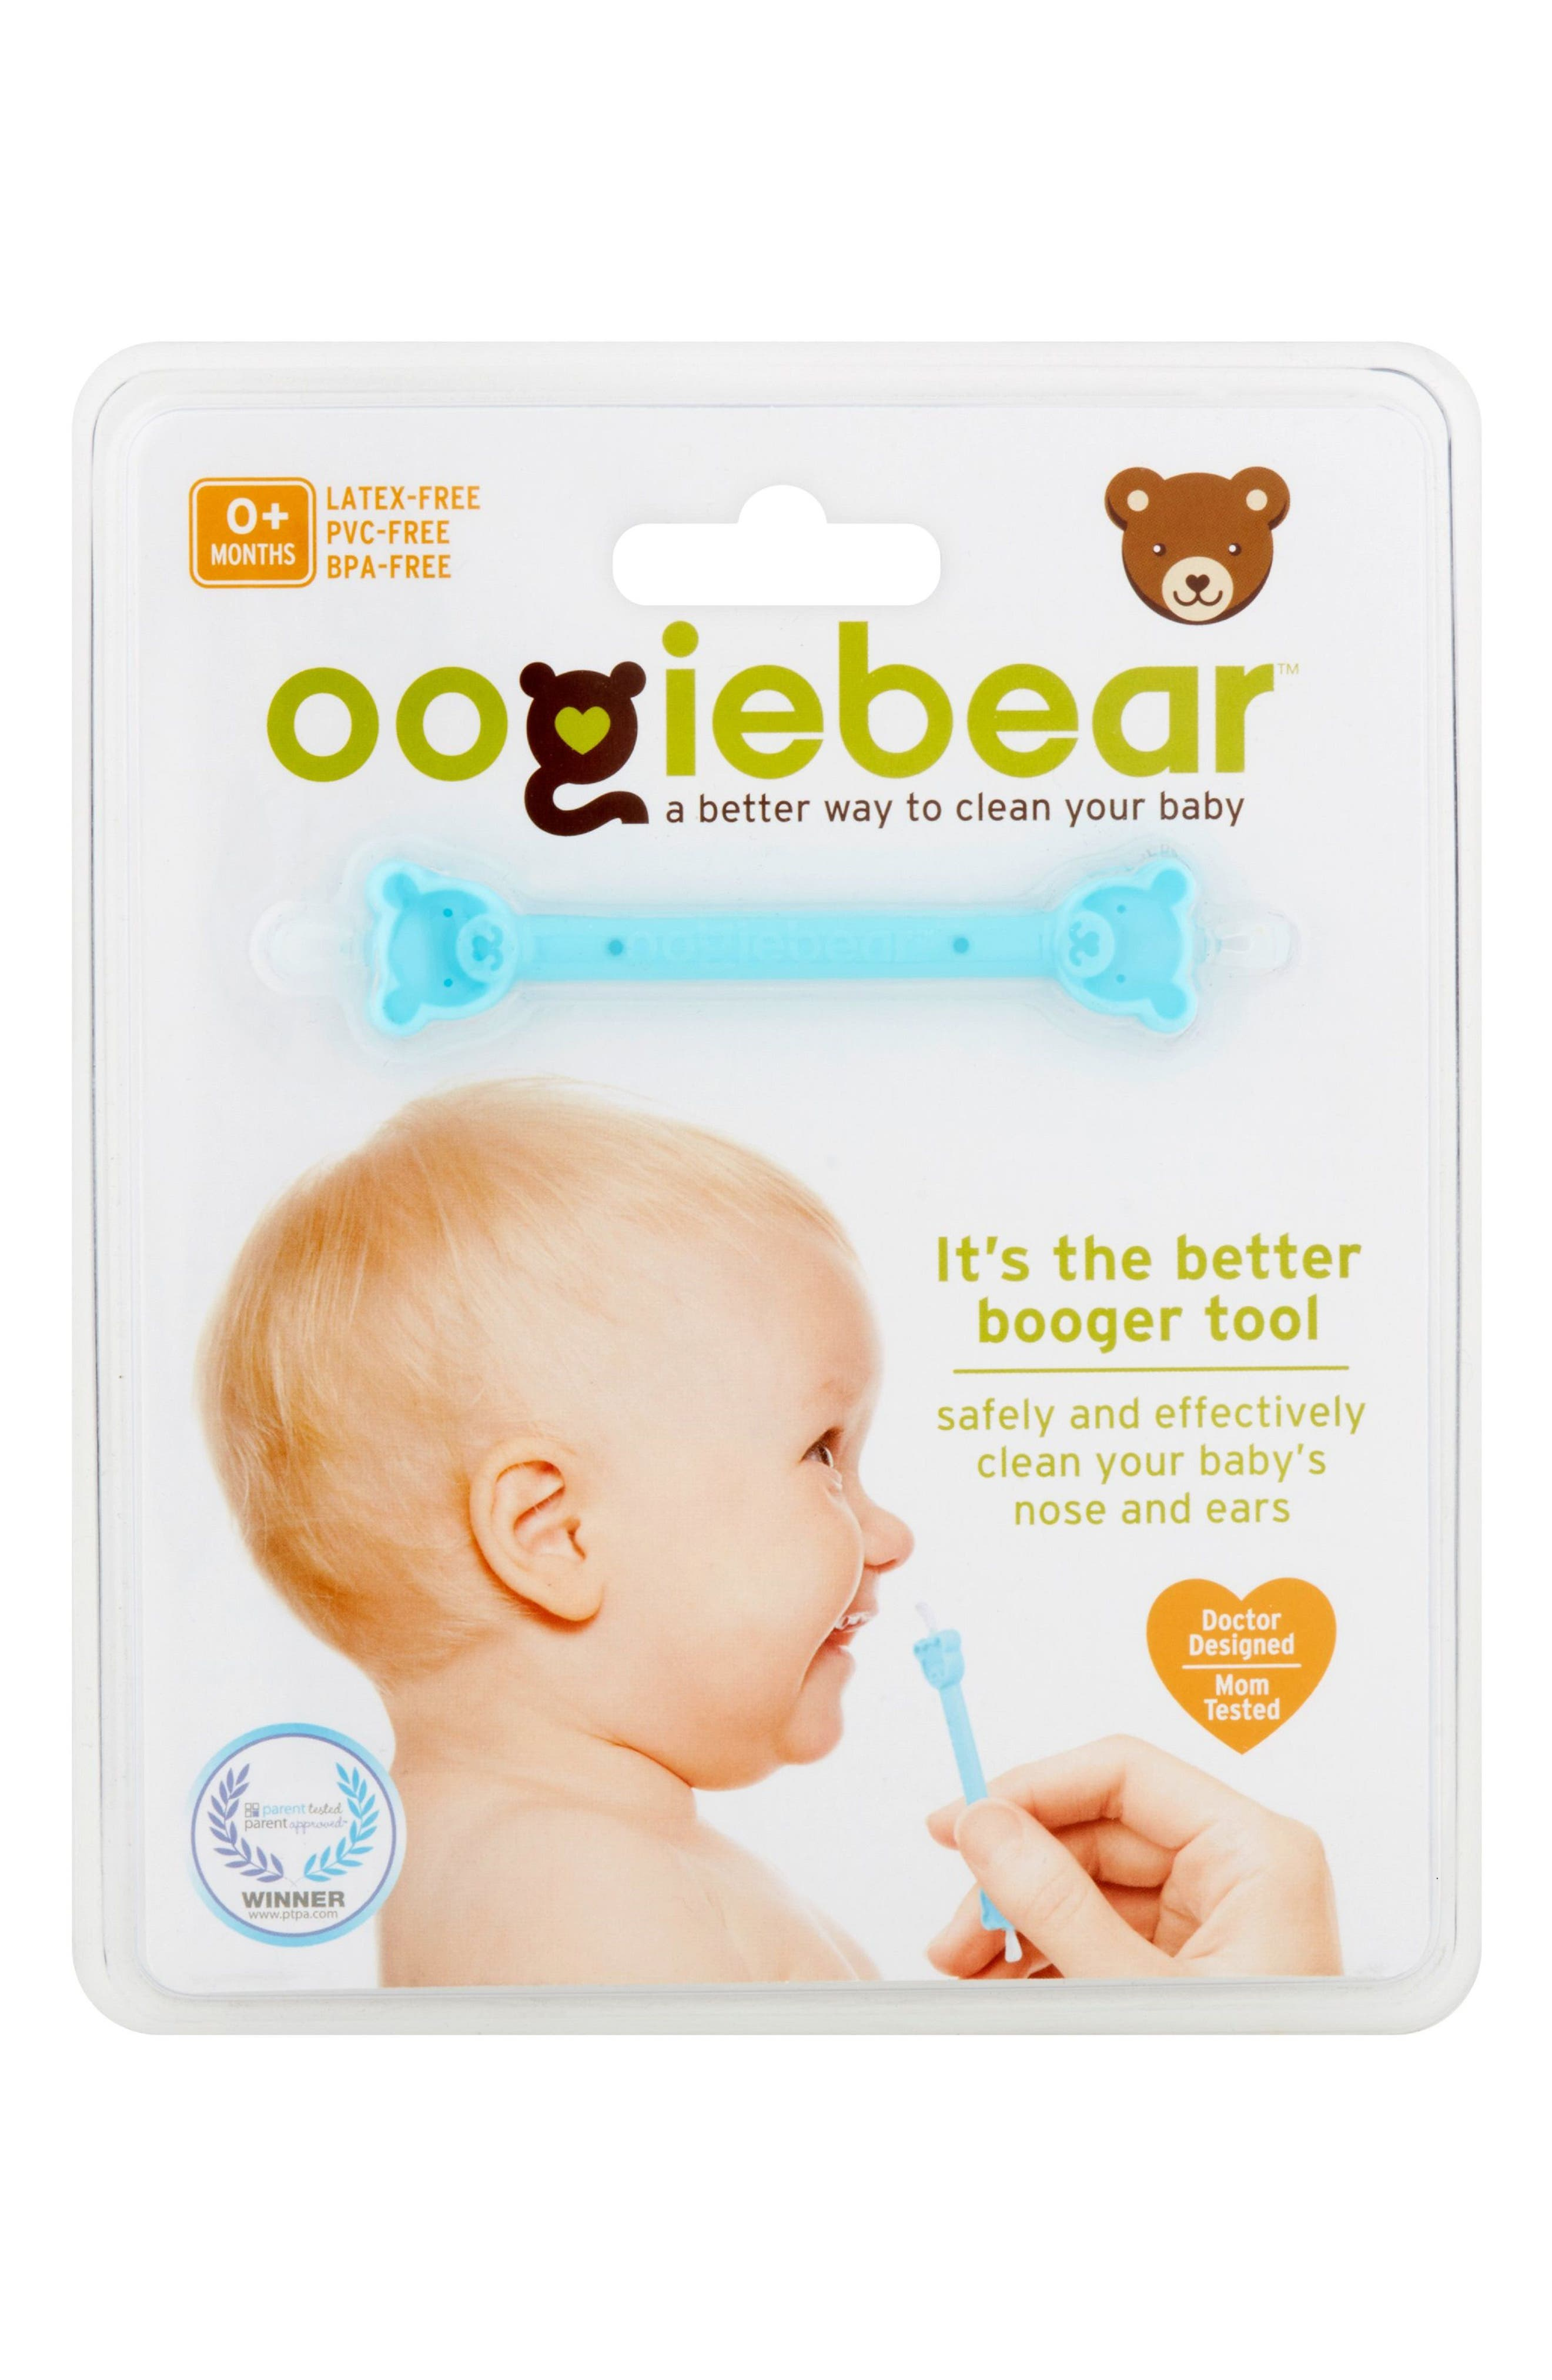 Alternate Image 1 Selected - oogiebear Nose & Ear Cleaner (Baby)